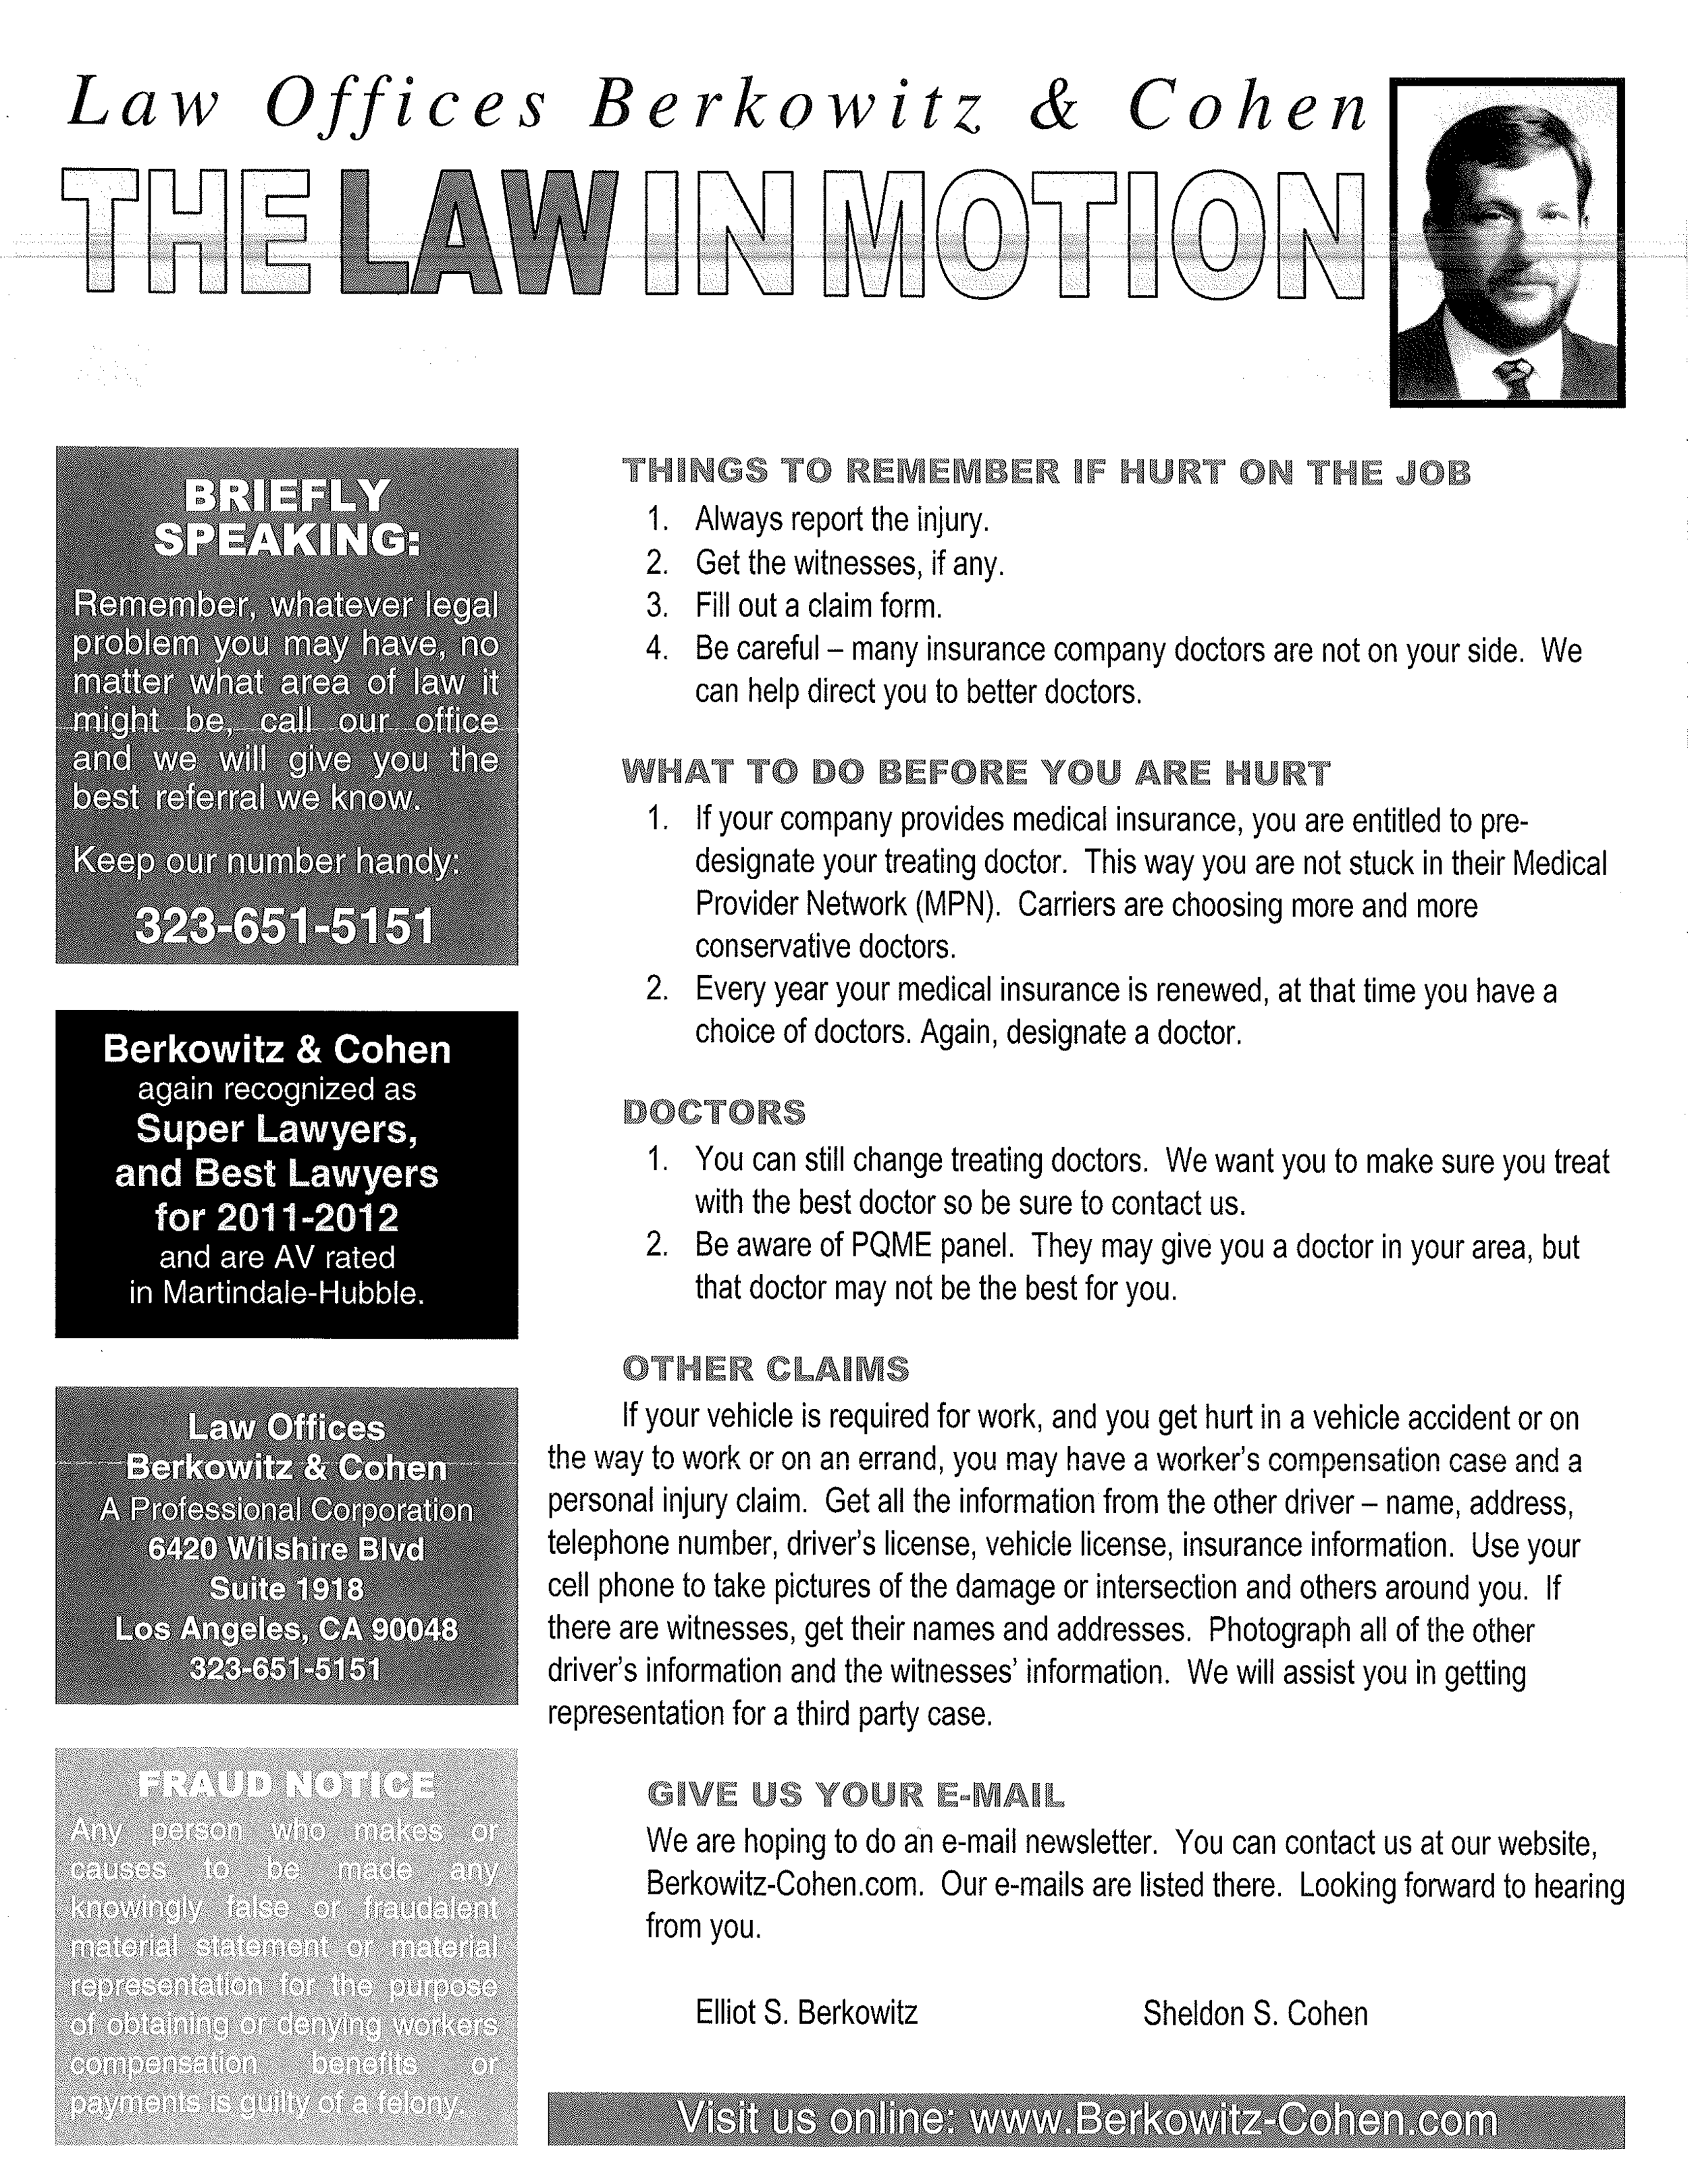 Law in Motion - Newsletters_Page_1.png